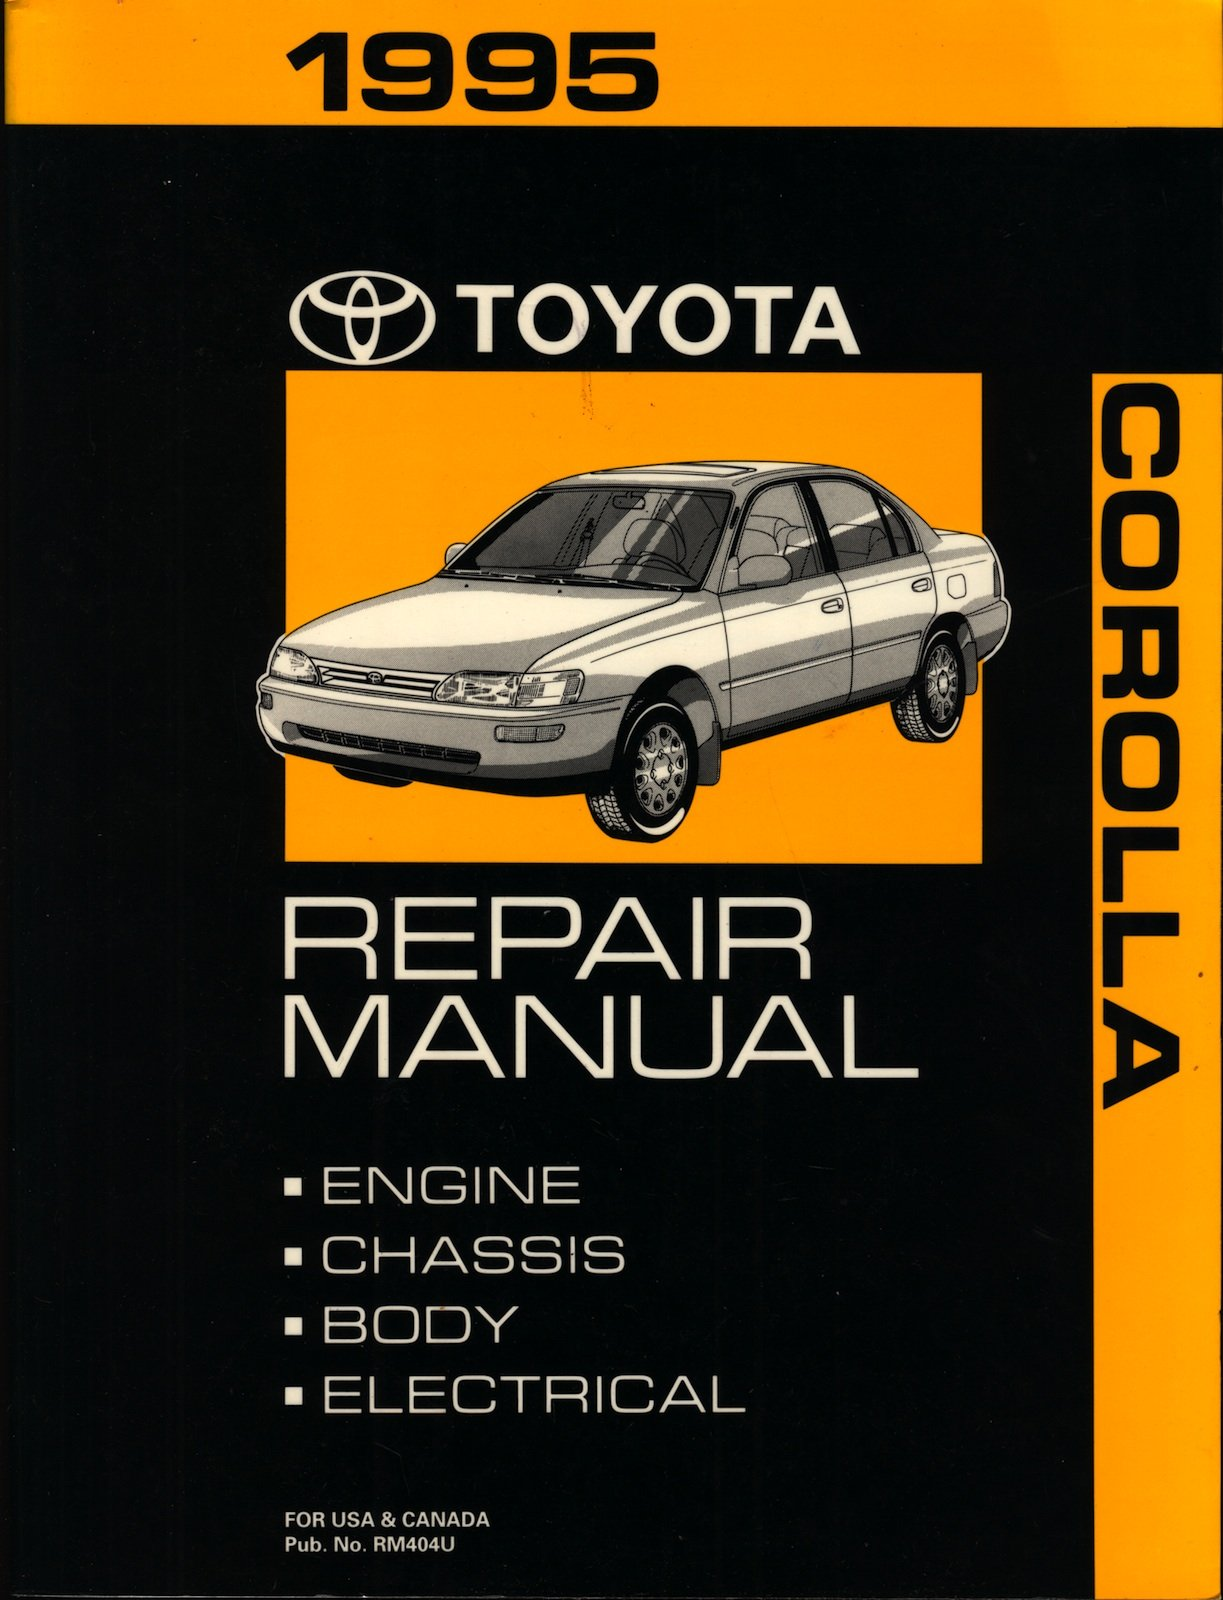 1995 toyota corolla repair manual toyota amazon com books rh amazon com Haynes Manual Pictures Back Haynes Manual Pictures Back